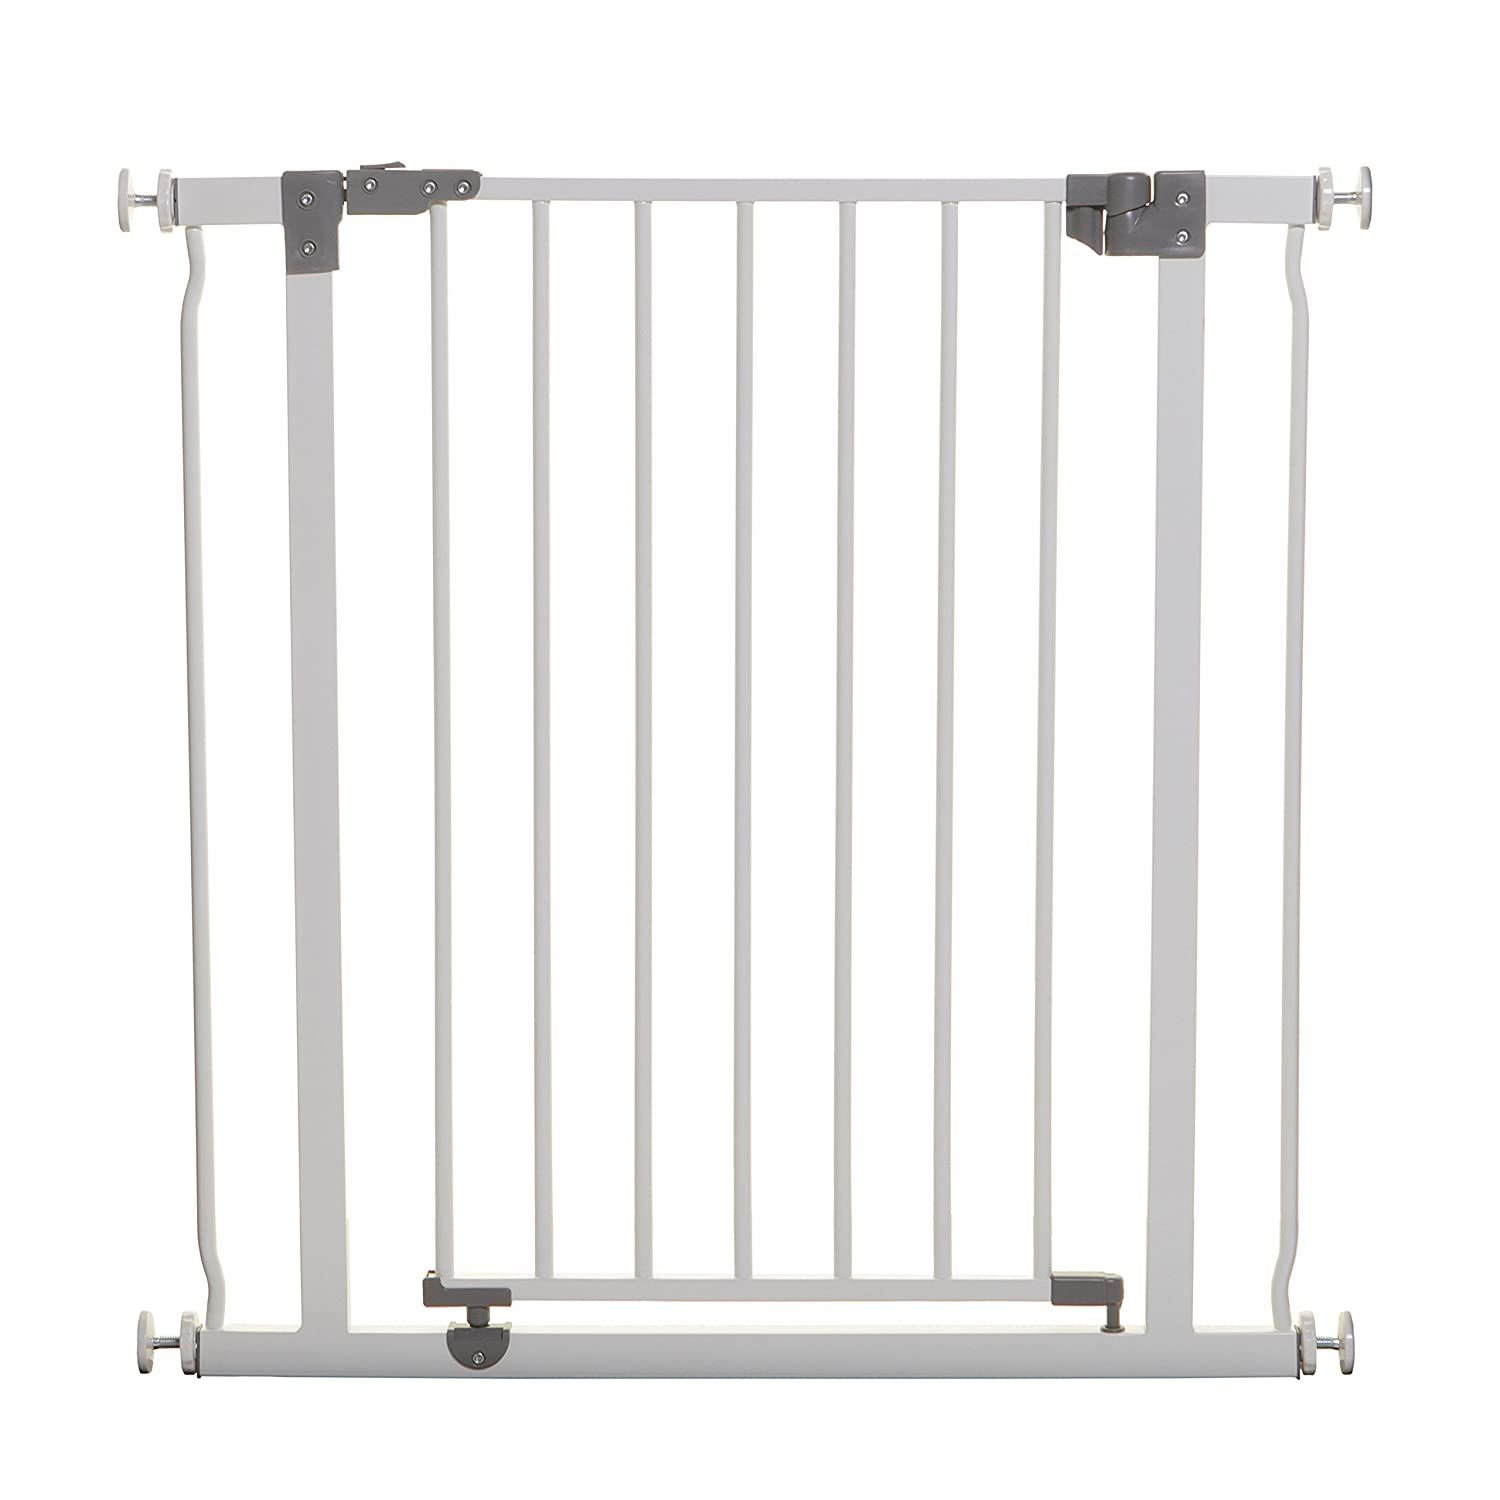 Dreambaby Liberty Safety Gate (Fits 75cm-82cm) Black Tee-Zed F919